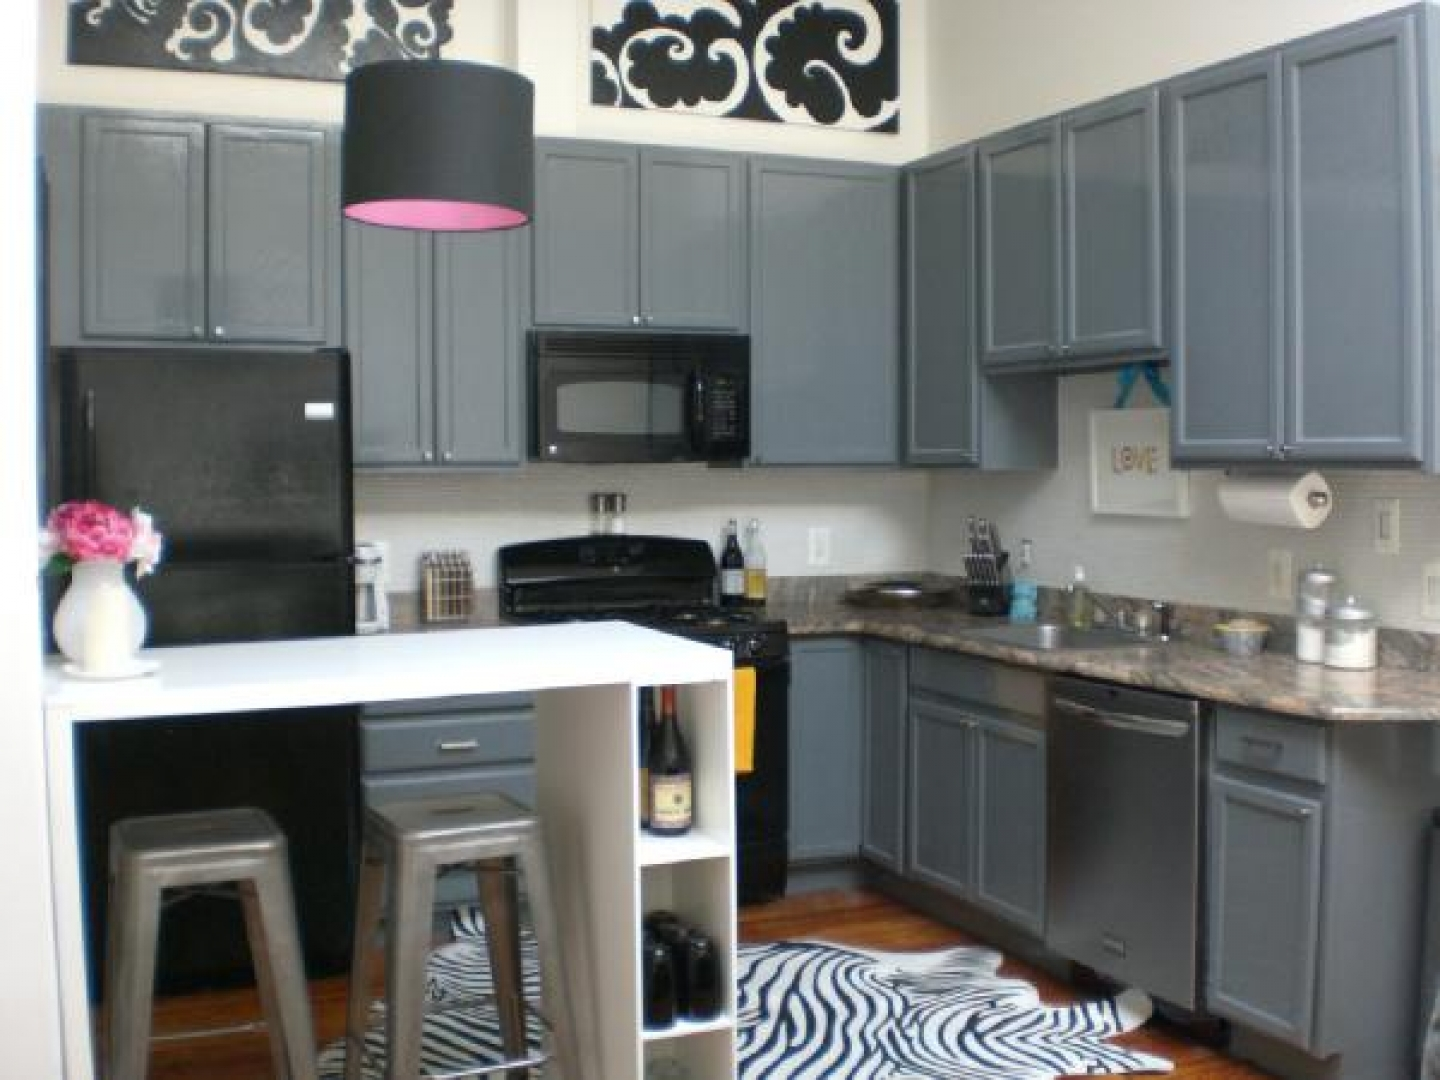 kitchendecorationszebrapinkyellowaquadecorationgreygraywhite